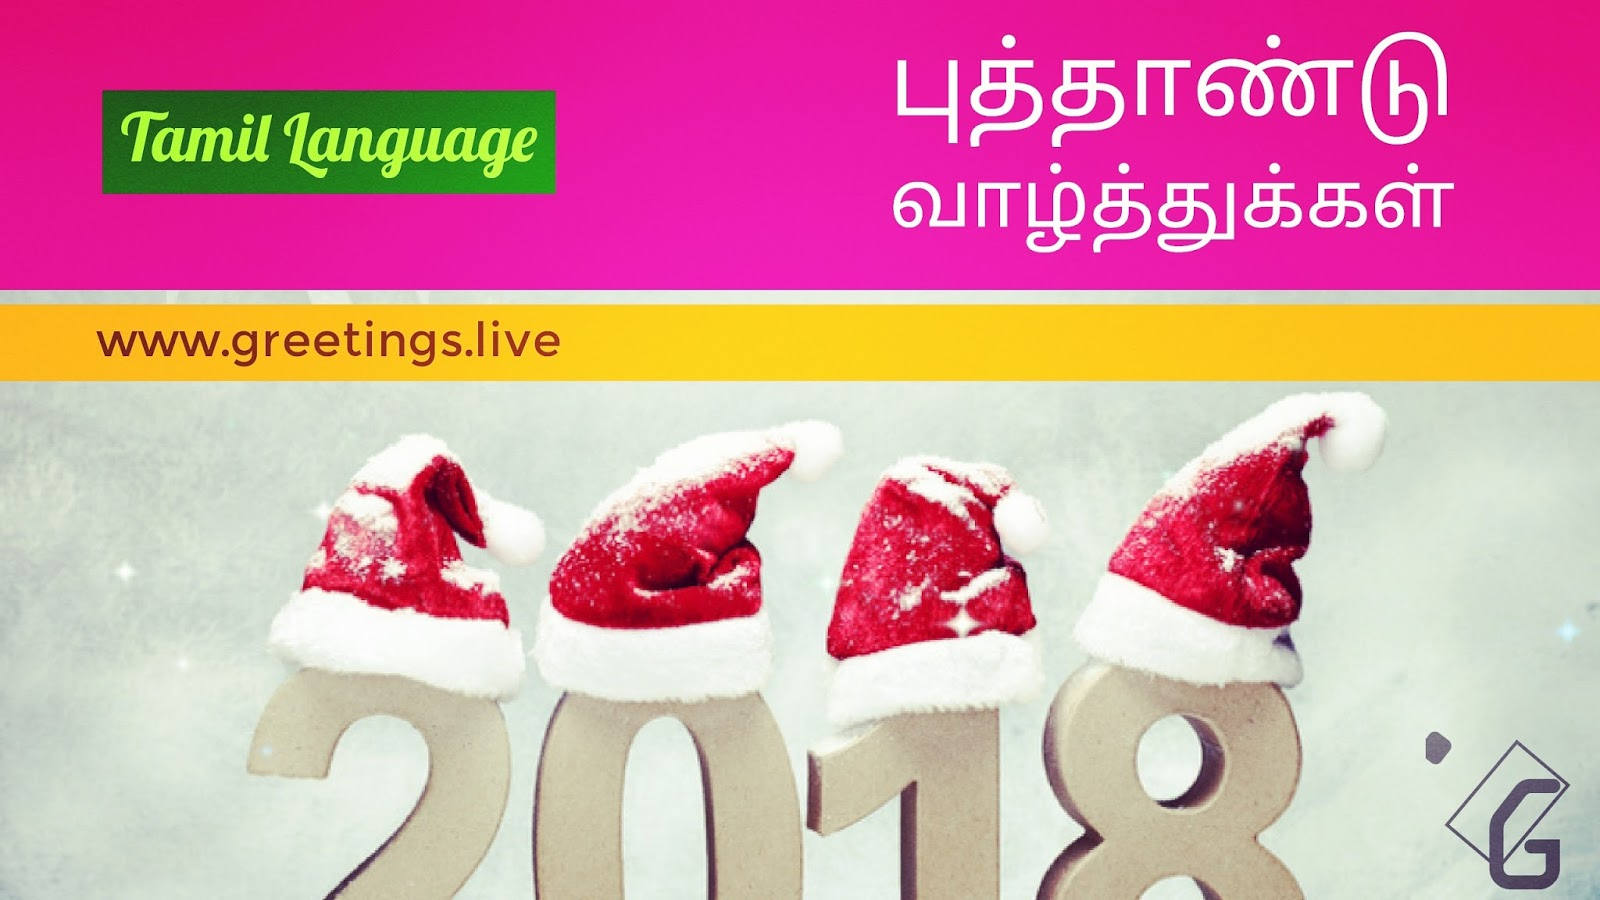 2018 New Year Wishes Greetings Tamil New Year Wishes 2018